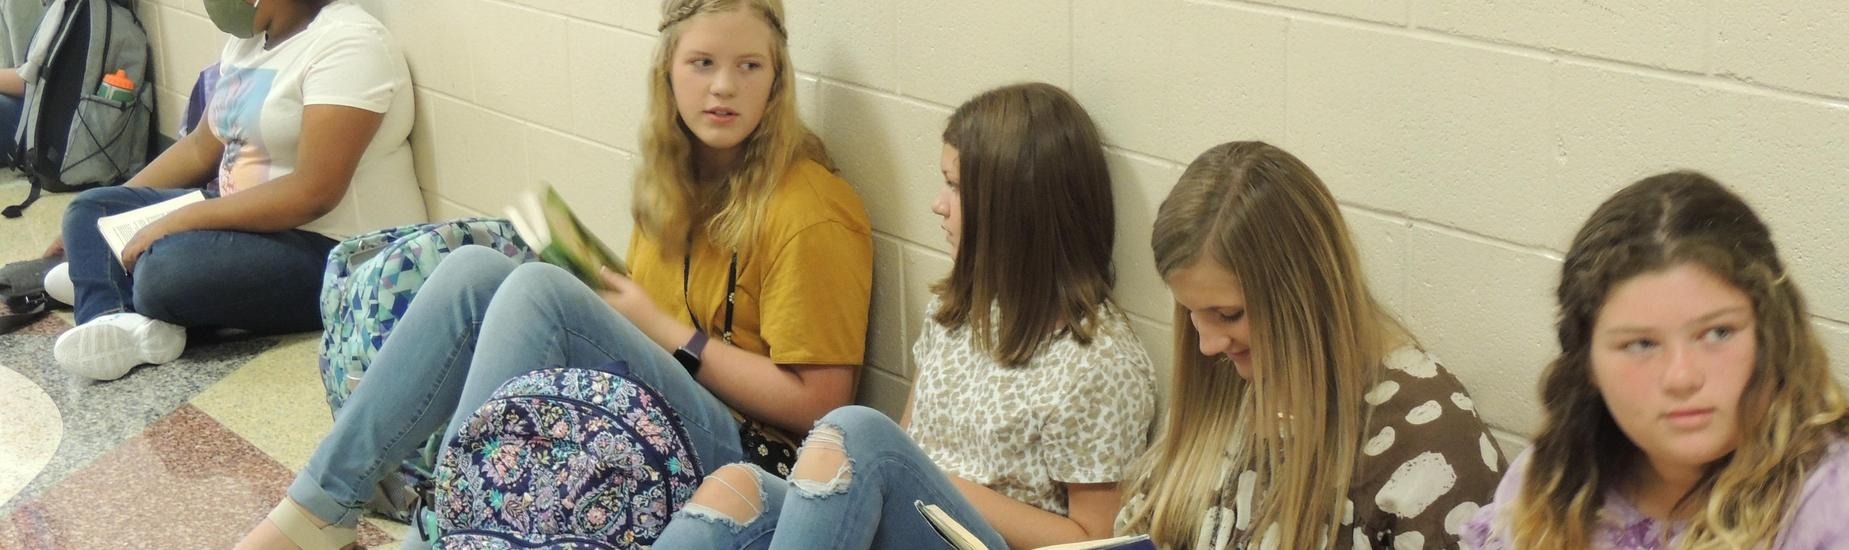 8th graders reading in the hallways before school